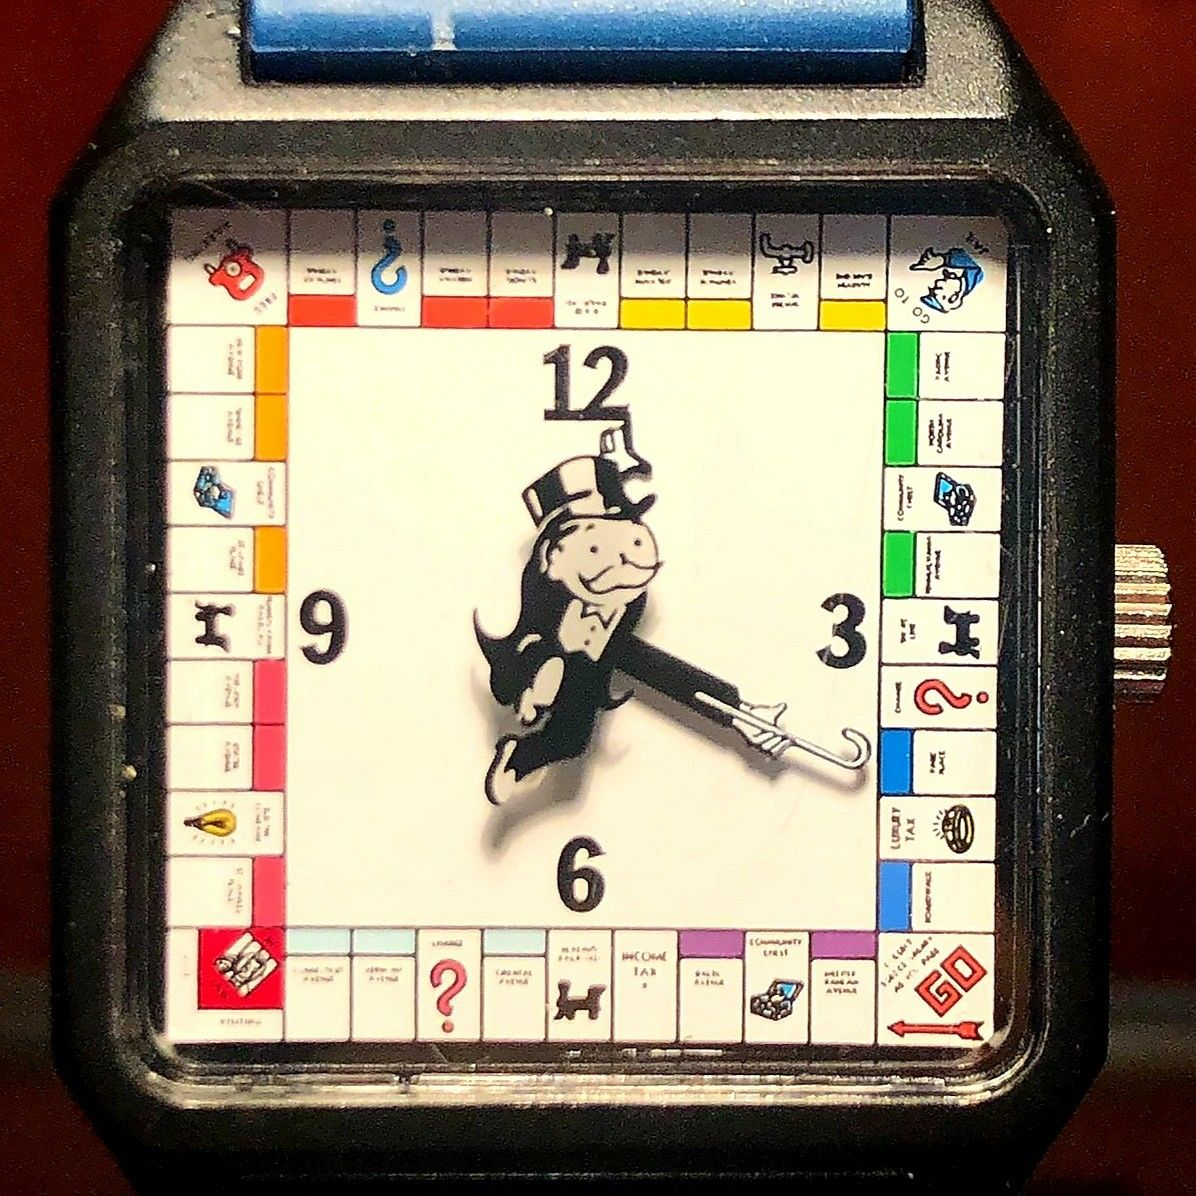 This is a vintage ca. 1986 E Gluck Parker Brothers Monopoly quartz watch sent in by Mary, from Washington, for repair. Thank you, Mary! ❤️ E Gluck, founded in 1956, by Eugene Gluck, is a watch manufacturer for fashion brands including Anne Klein, Armitron, Nine West, Badgley Mischka, and Vince Camuto. ⭐ #fashionwatchrepair #monopoly #washington #mary #time #fashion #repair #professional #manufacturer #watchfan #watch #upgrade #approved #different #timepieces #watchrepair #watchaddict #watchlov